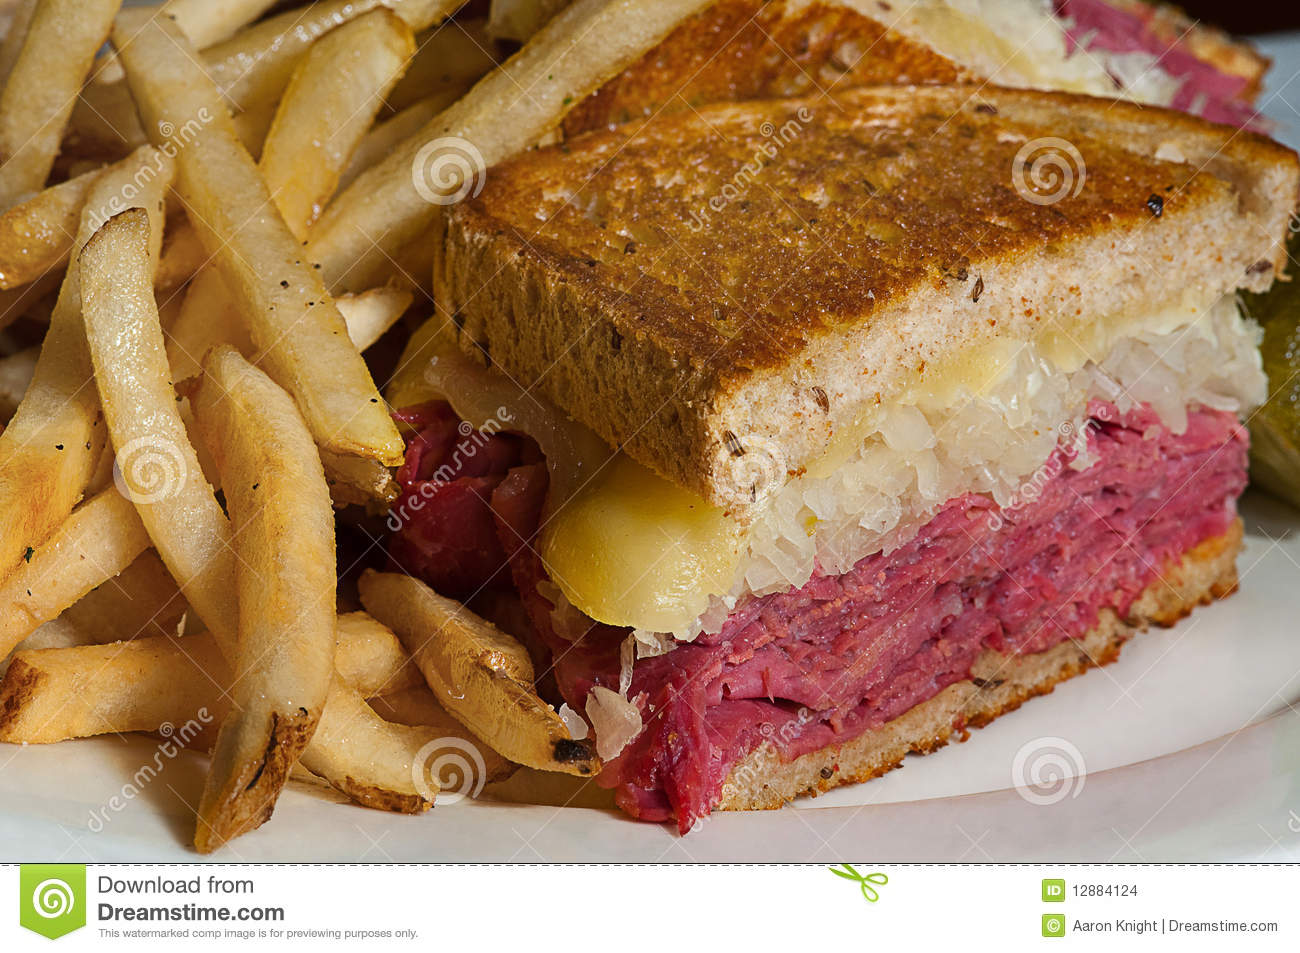 Clean, tight shot of a freshly made Reuben sandwich with french fries ...